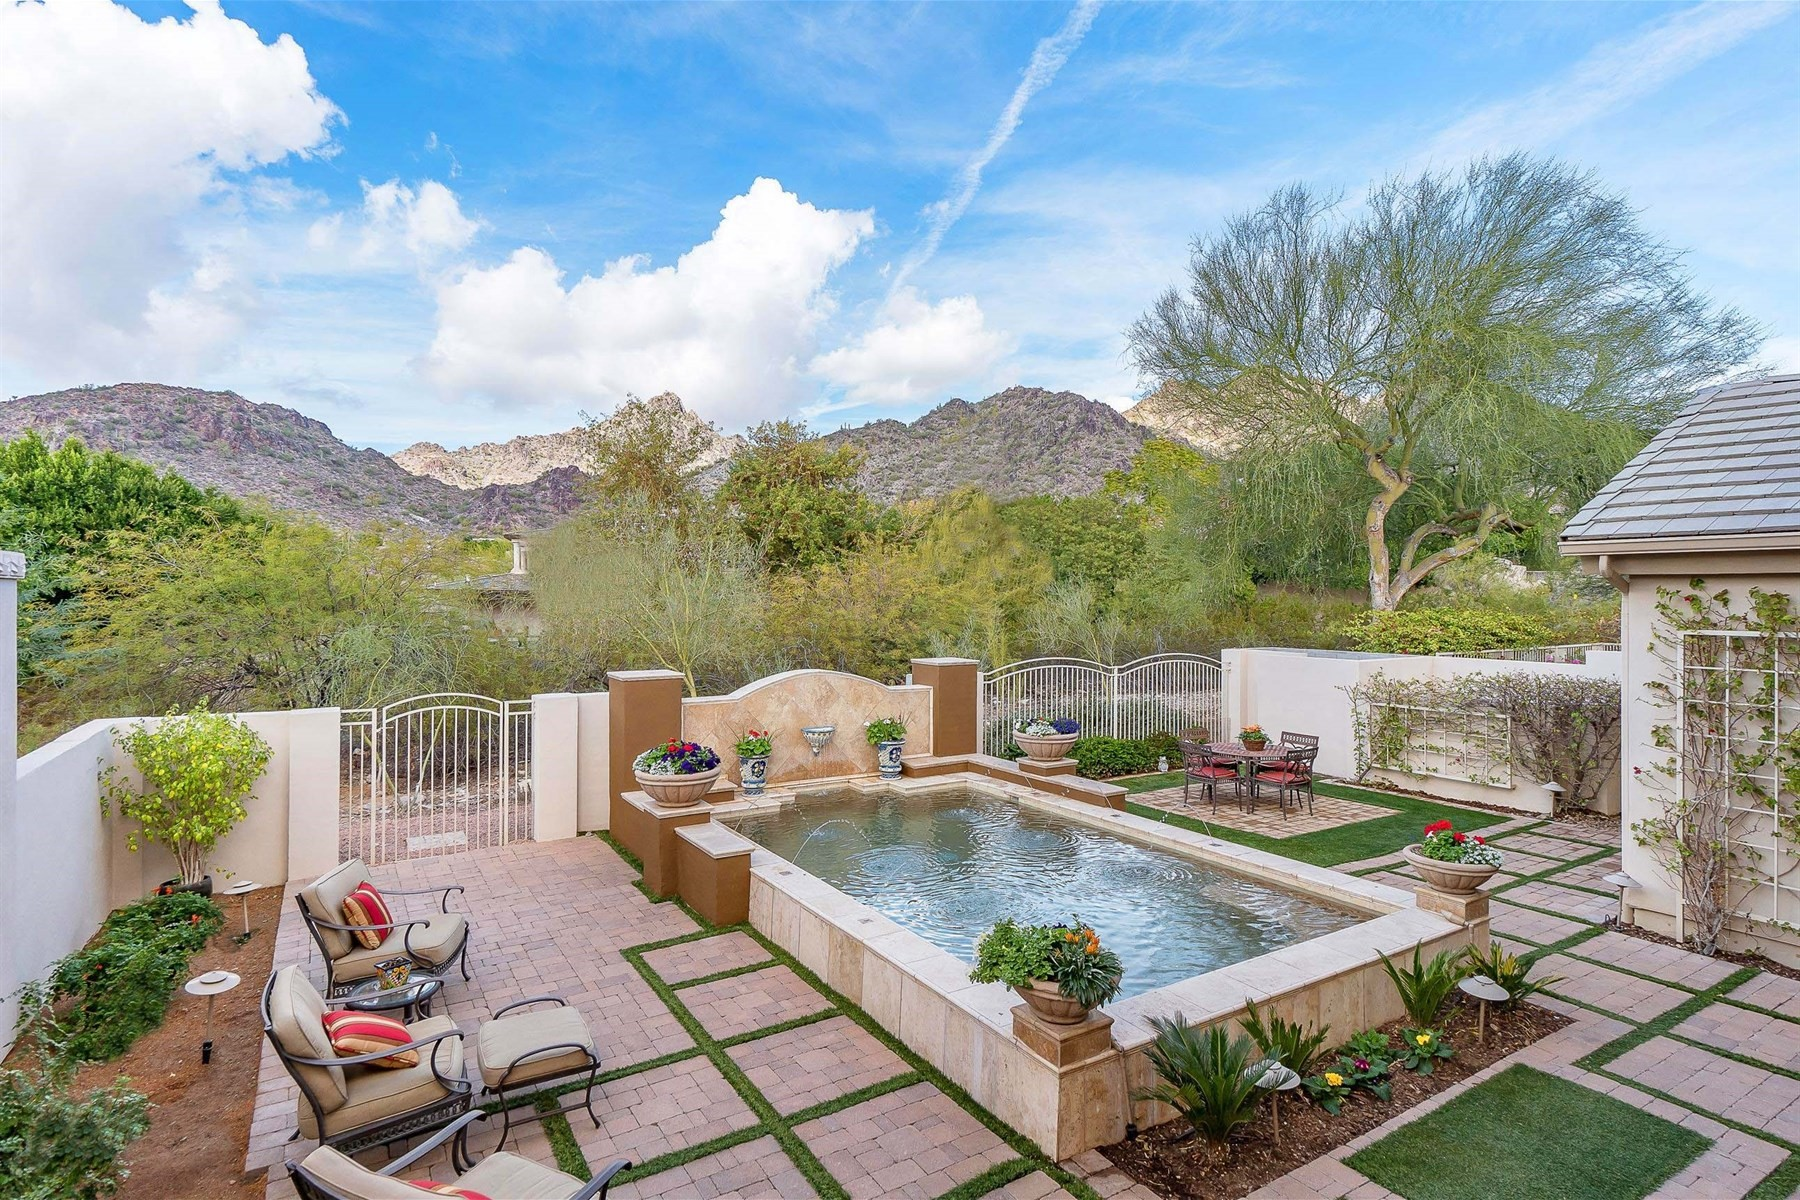 Single Family Home for Sale at Fabulous home with stunning views 3108 E Sierra Vista Dr Phoenix, Arizona, 85016 United States